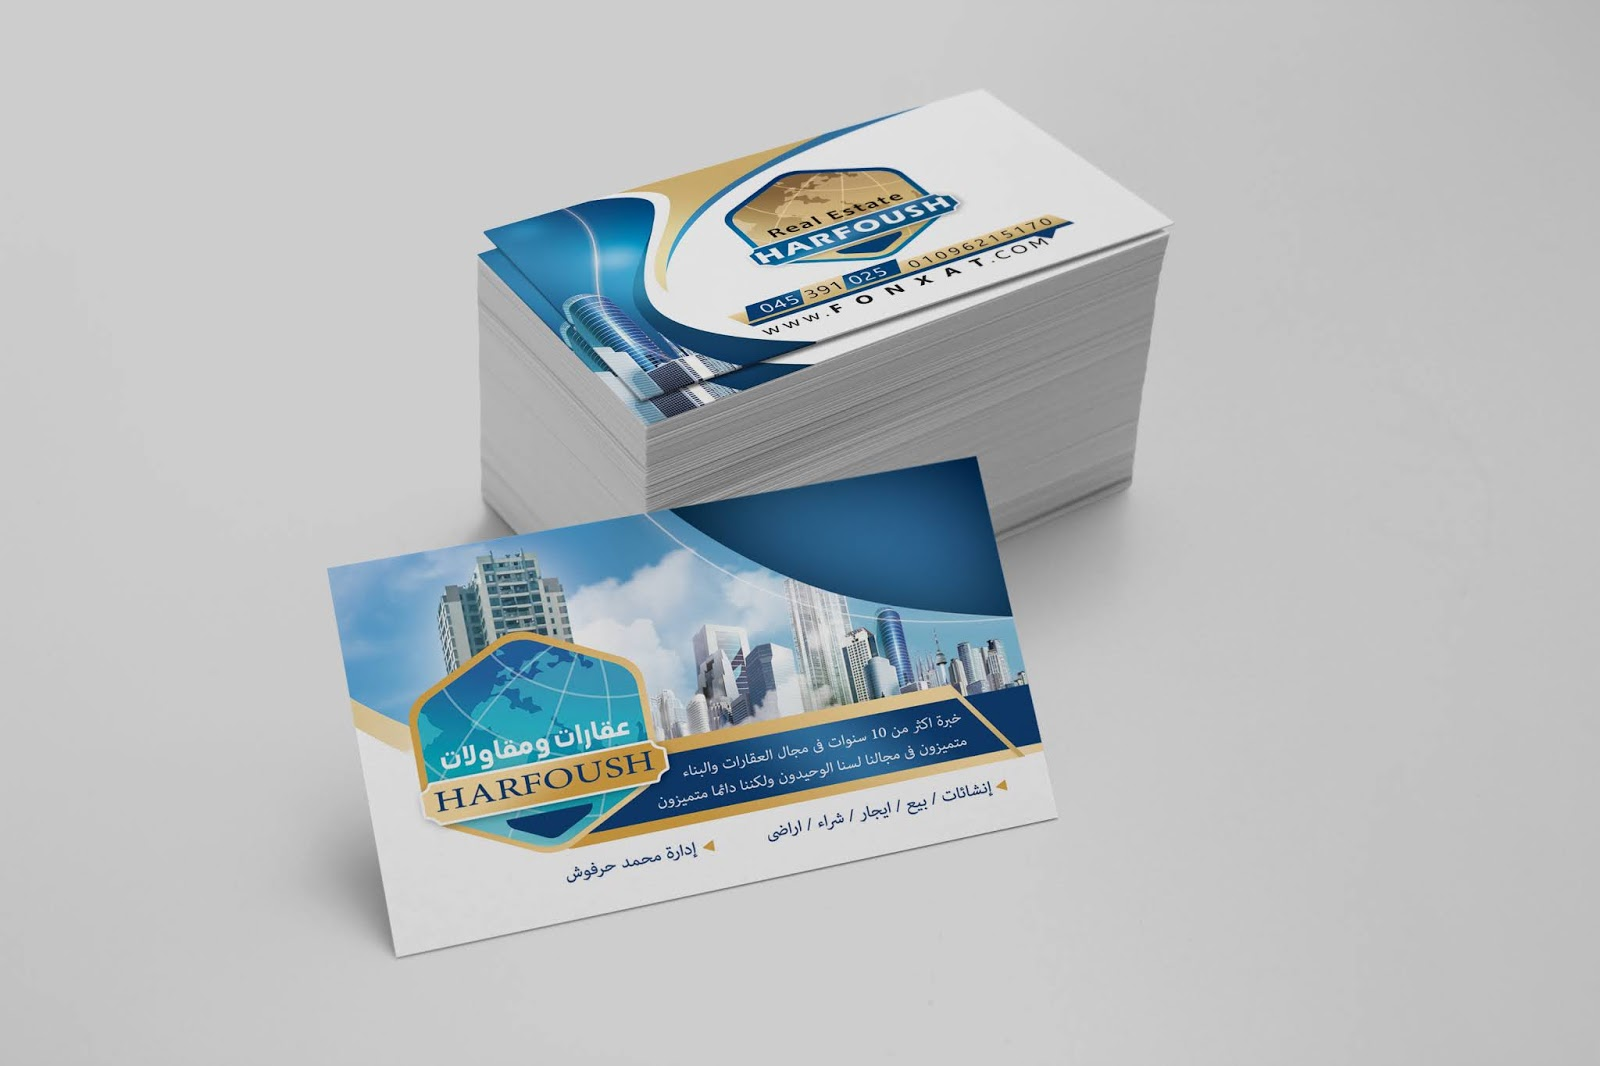 Open source real estate personal card, real estate business card, professional design